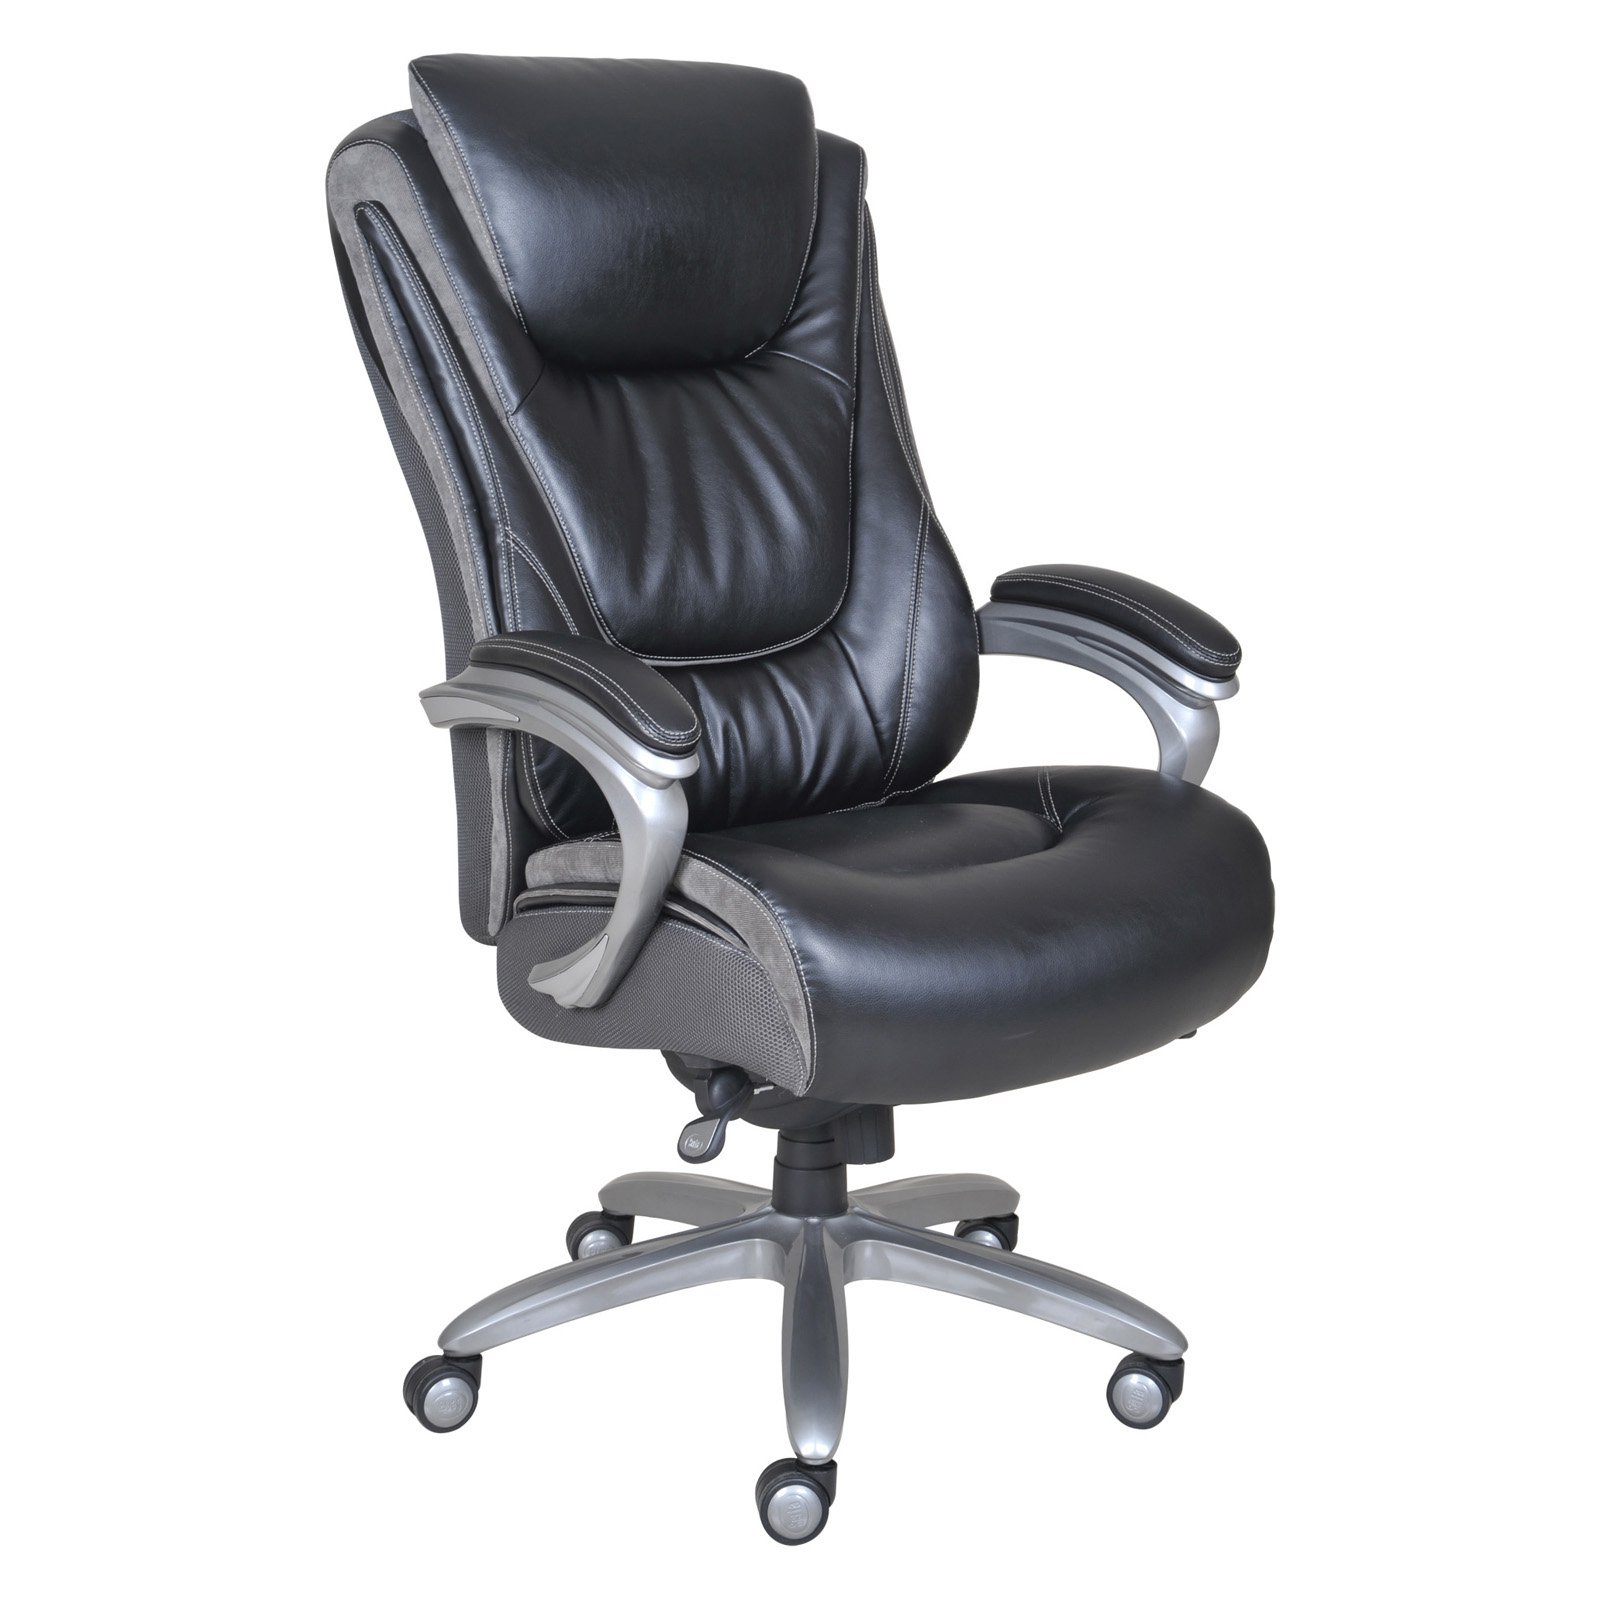 Tall Executive Leather Office Chair